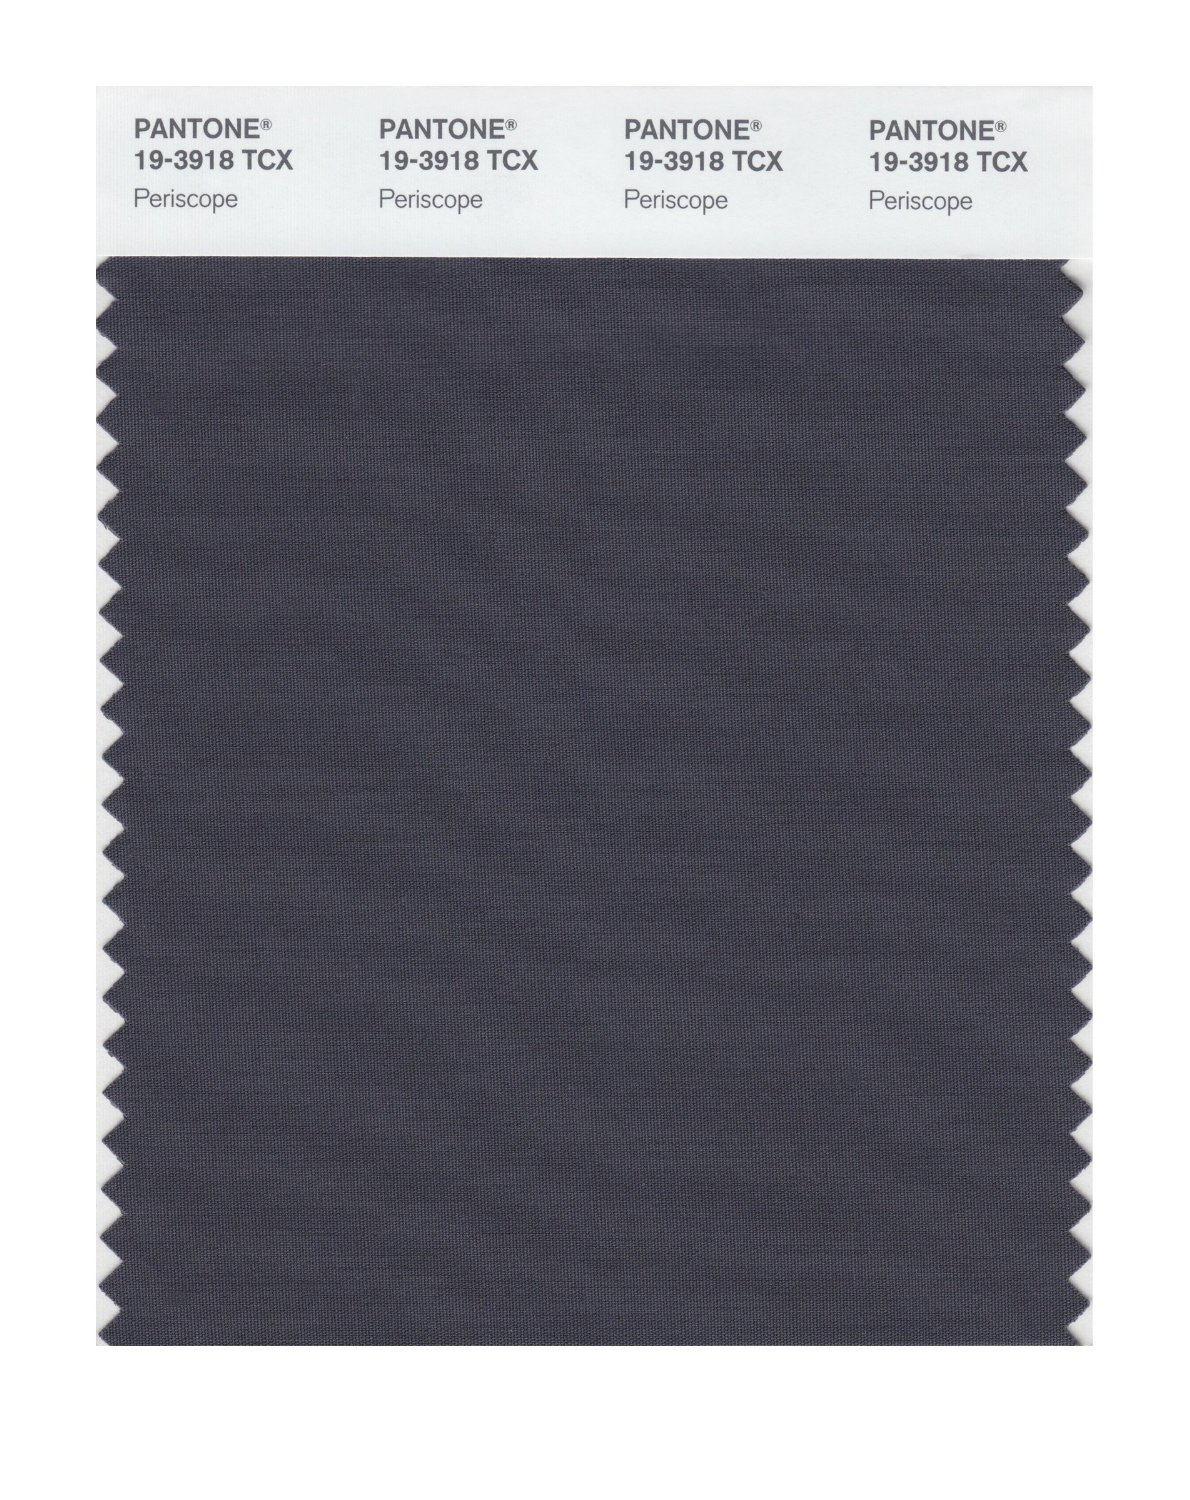 Pantone Smart Swatch 19-3918 Periscope